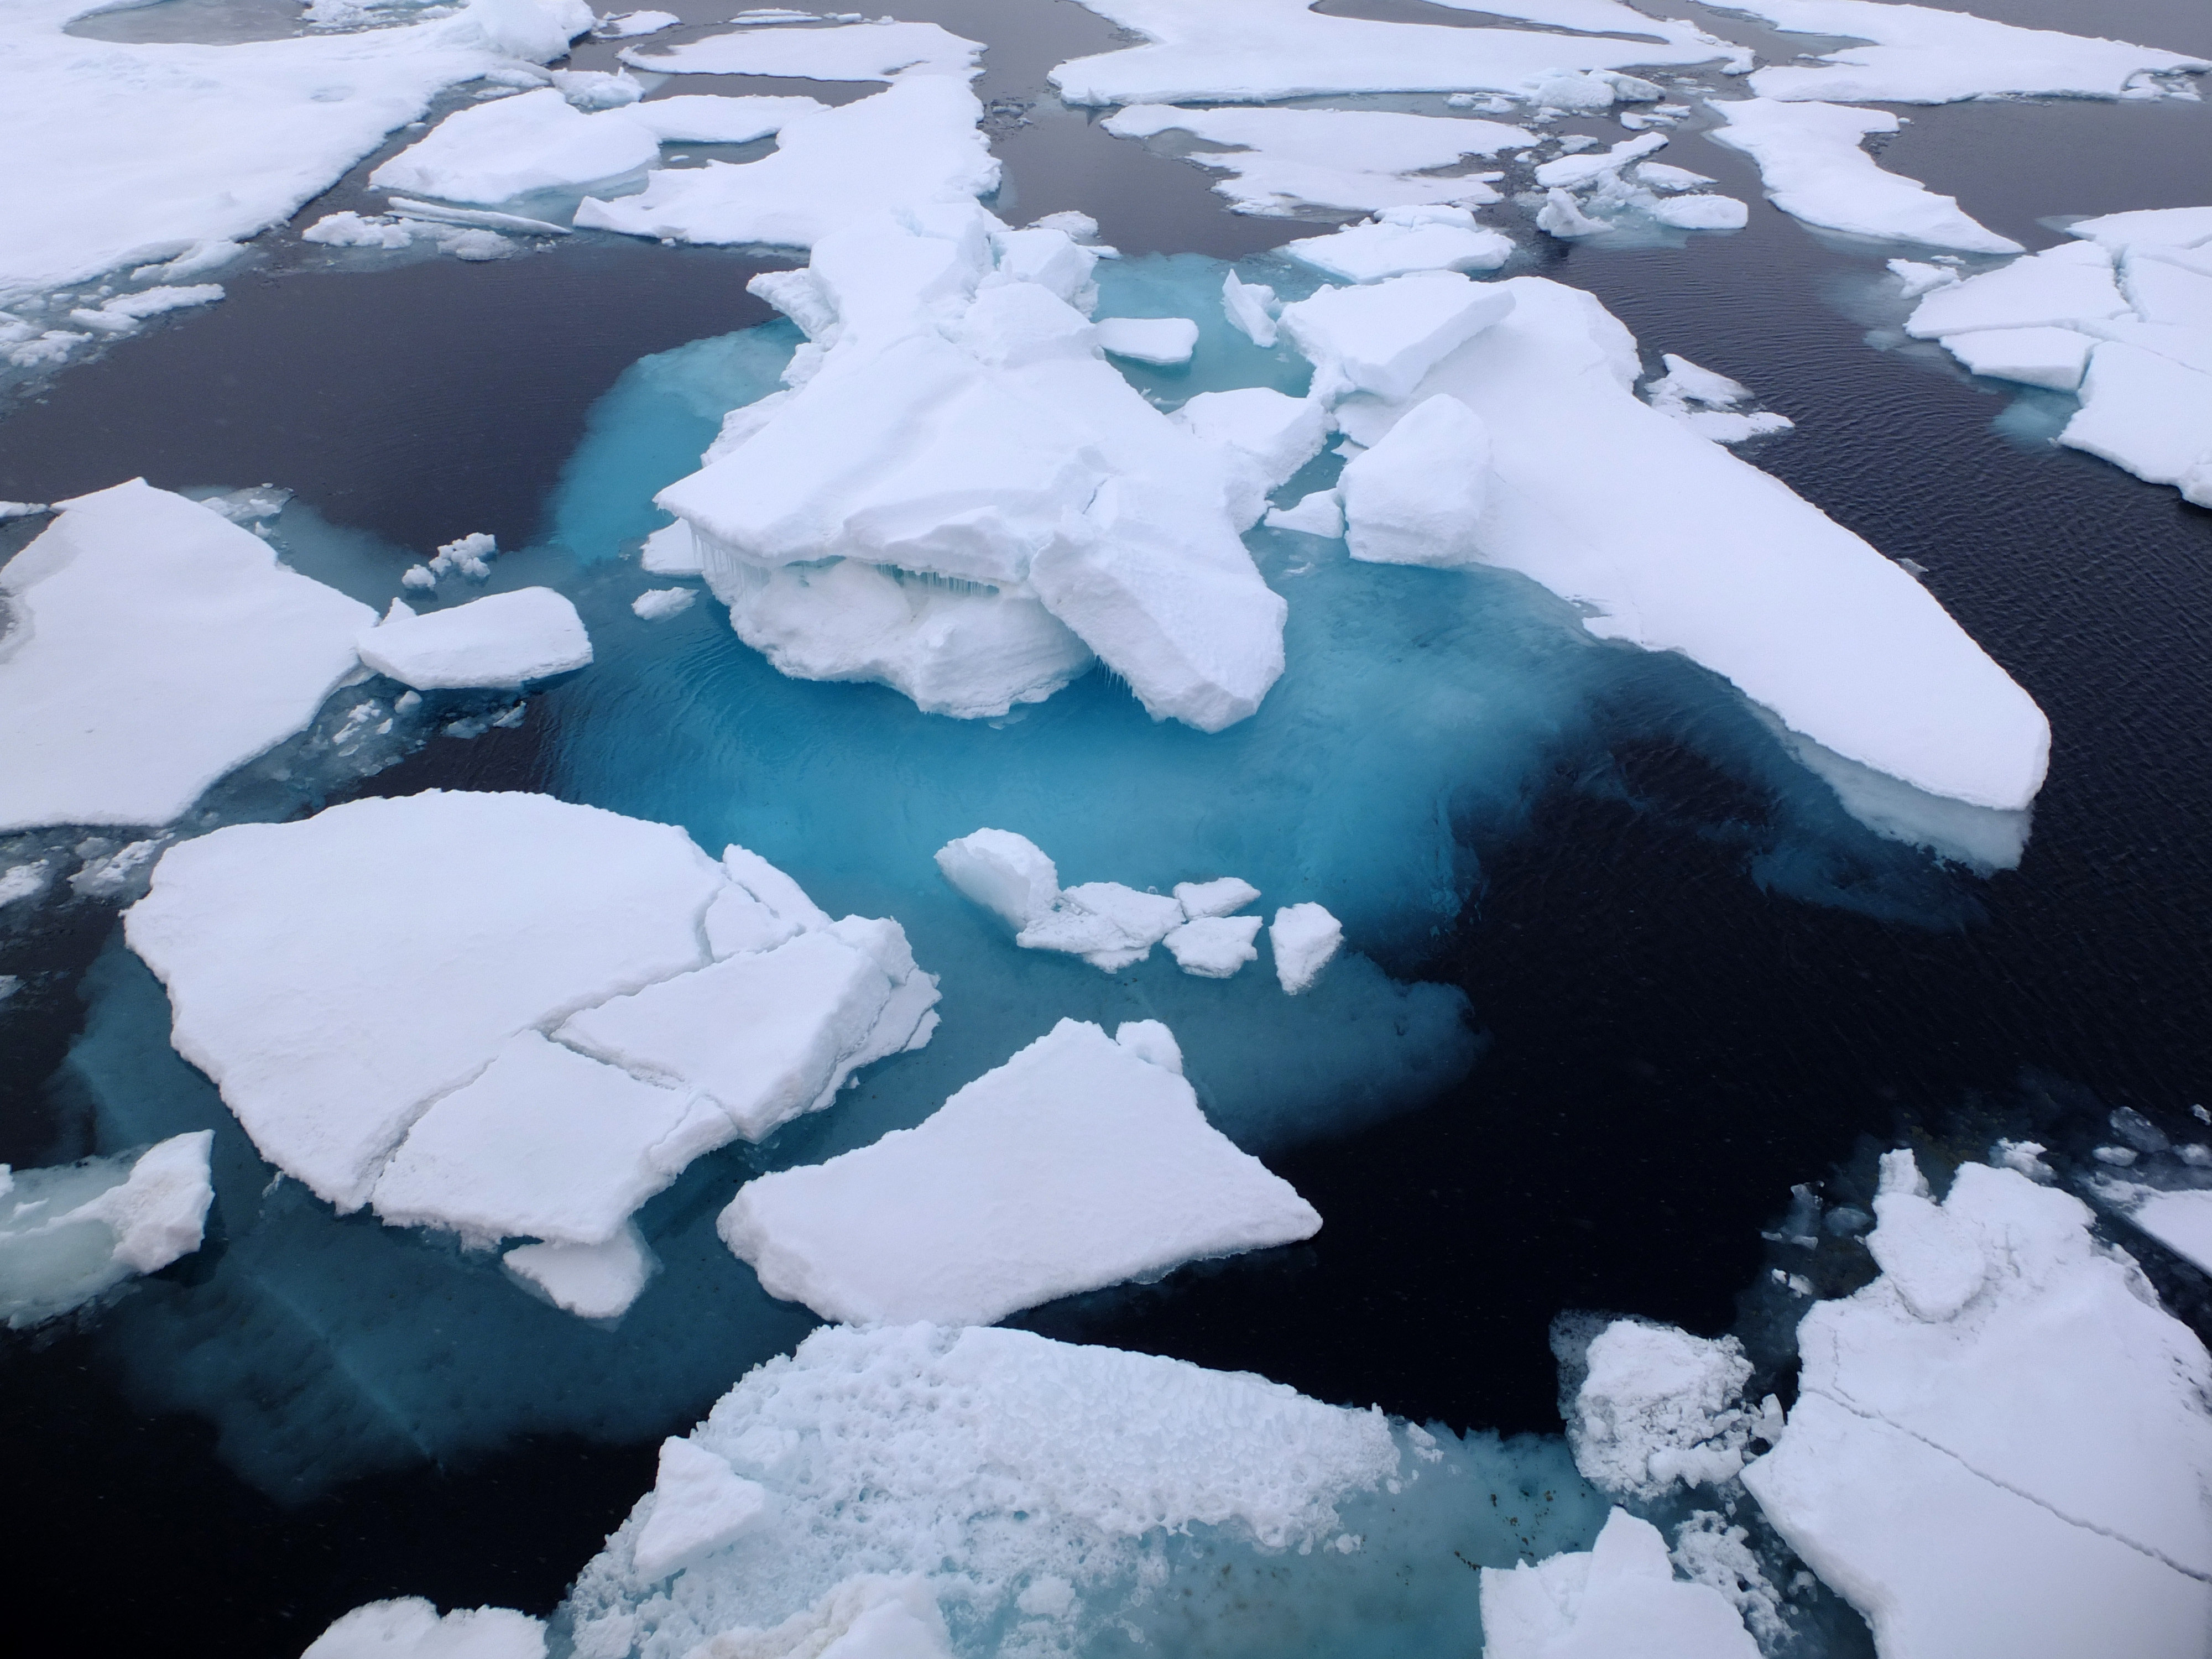 Light coloured ice, with darker water